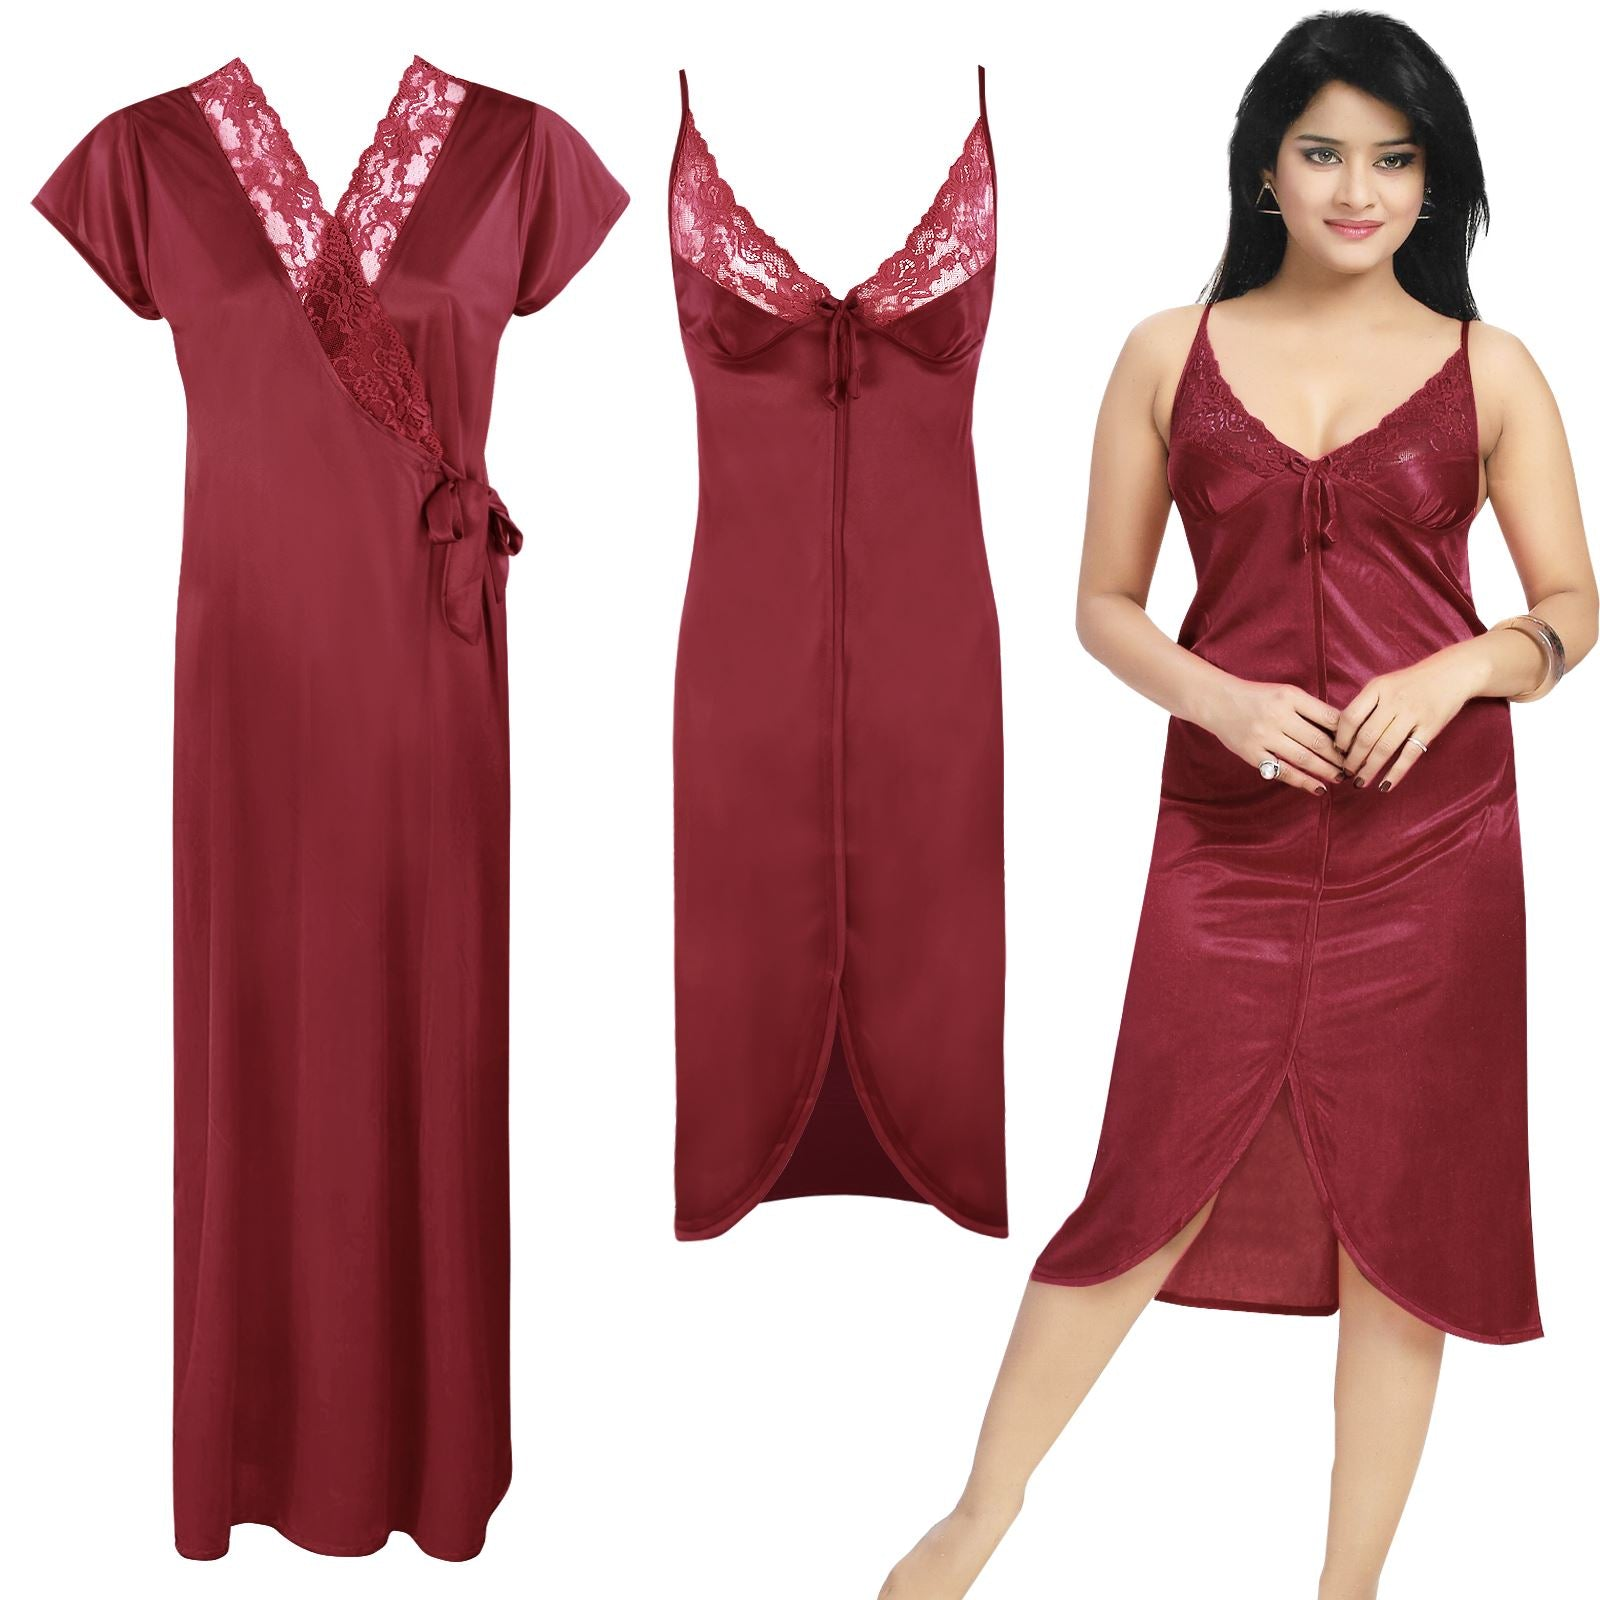 Color: Deep Red 2 Piece Satin Short Nighty And Robe Size: One Size: Regular (8-14)